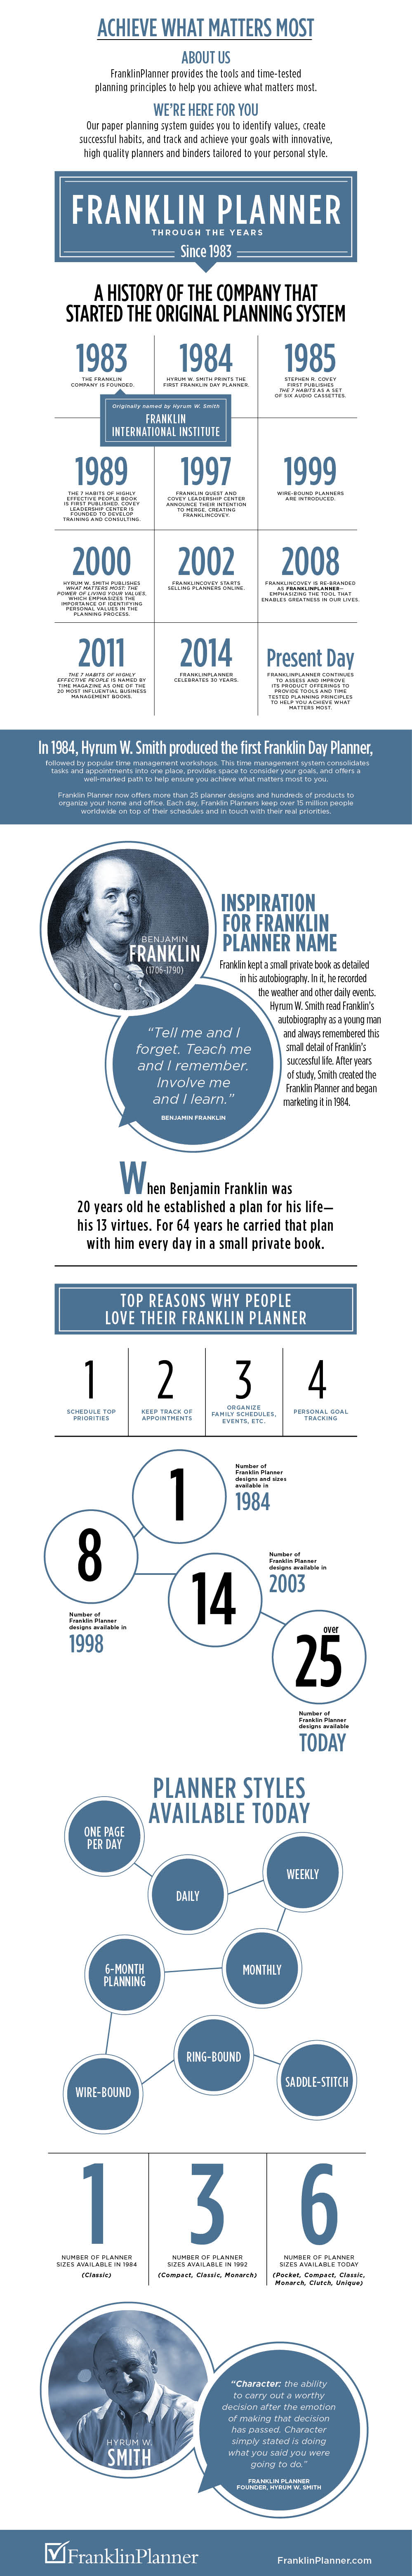 35 Years of Planning - Achieve What Matters Most - FranklinPlanner provides the tools and time-test planning principles to help you achieve what matters most.